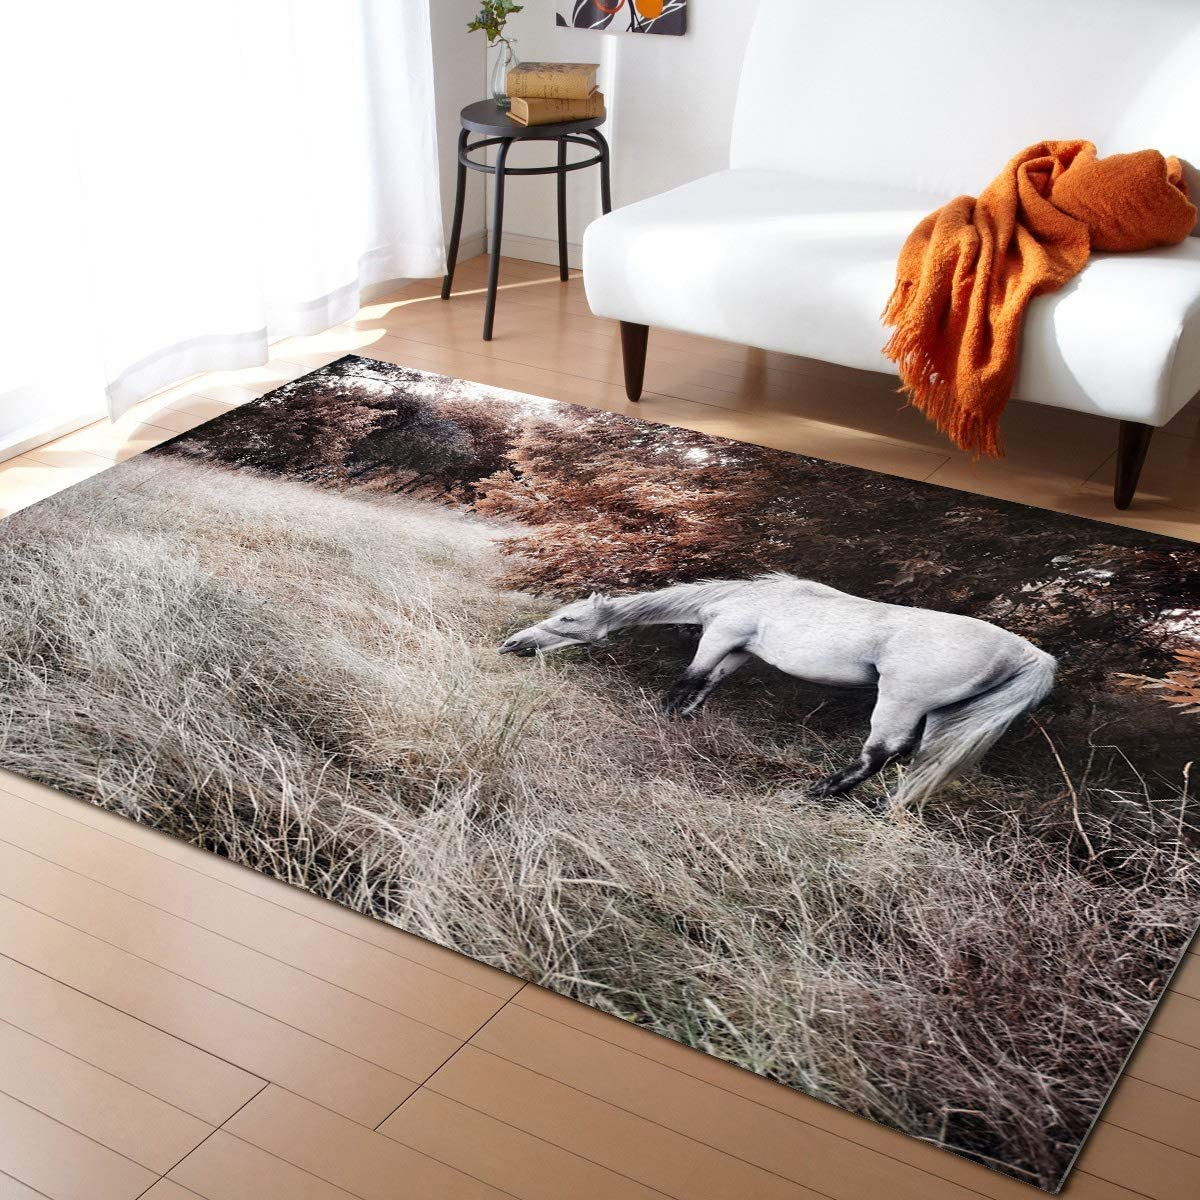 Large Area Rug for Living Room- Many popular brands White in Countryside S Popularity Horse The